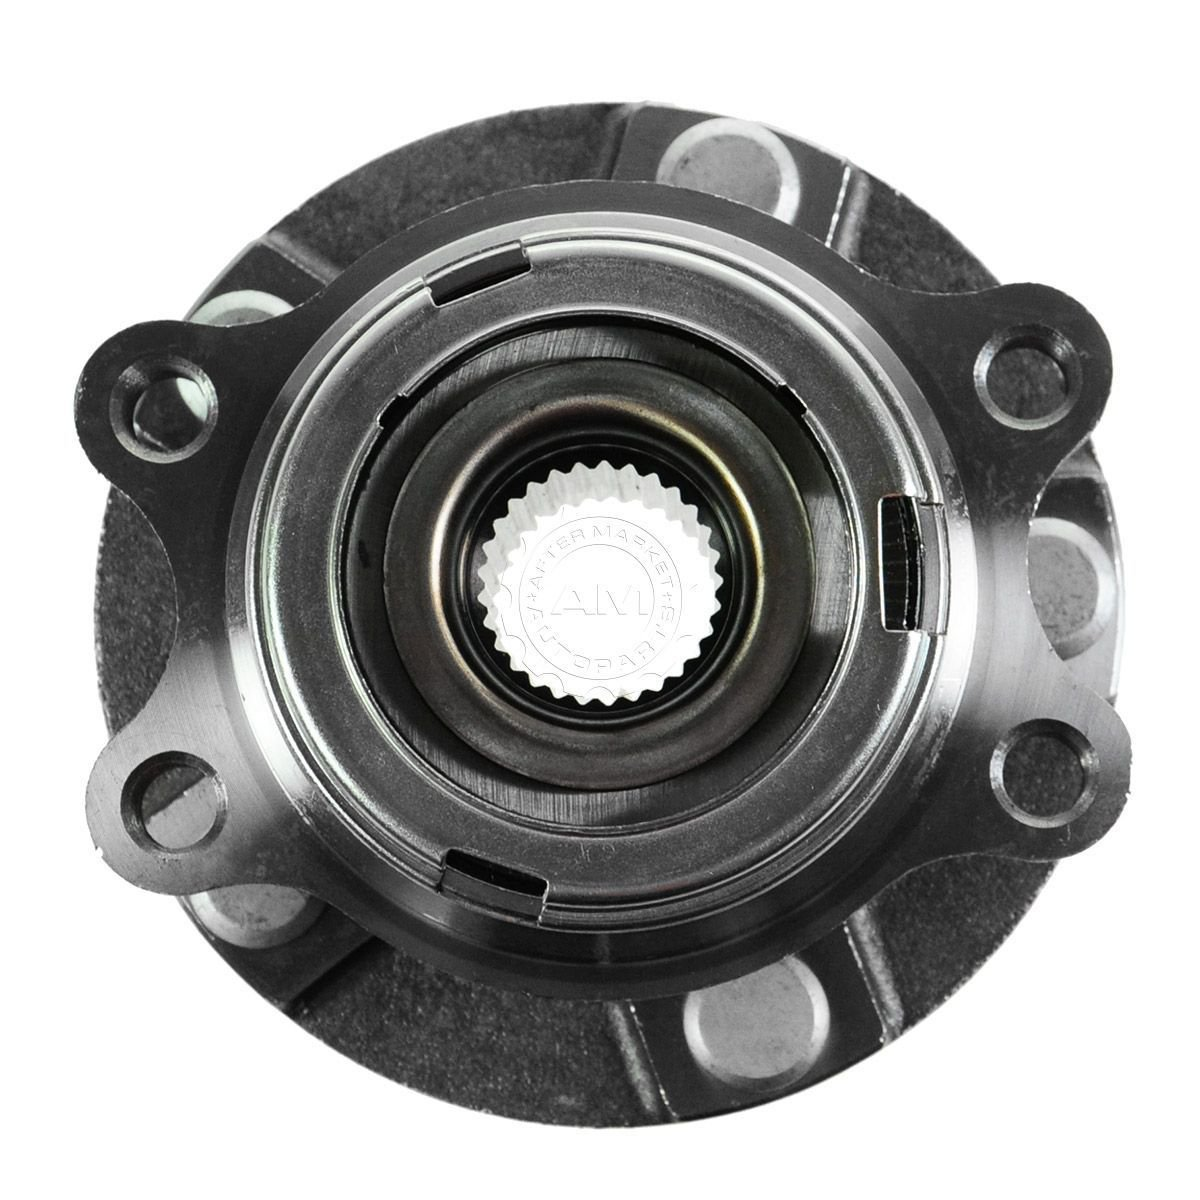 Wheel Hub & Bearing Front Left LH or Right RH for 07-12 Altima w/ABS 2.5L